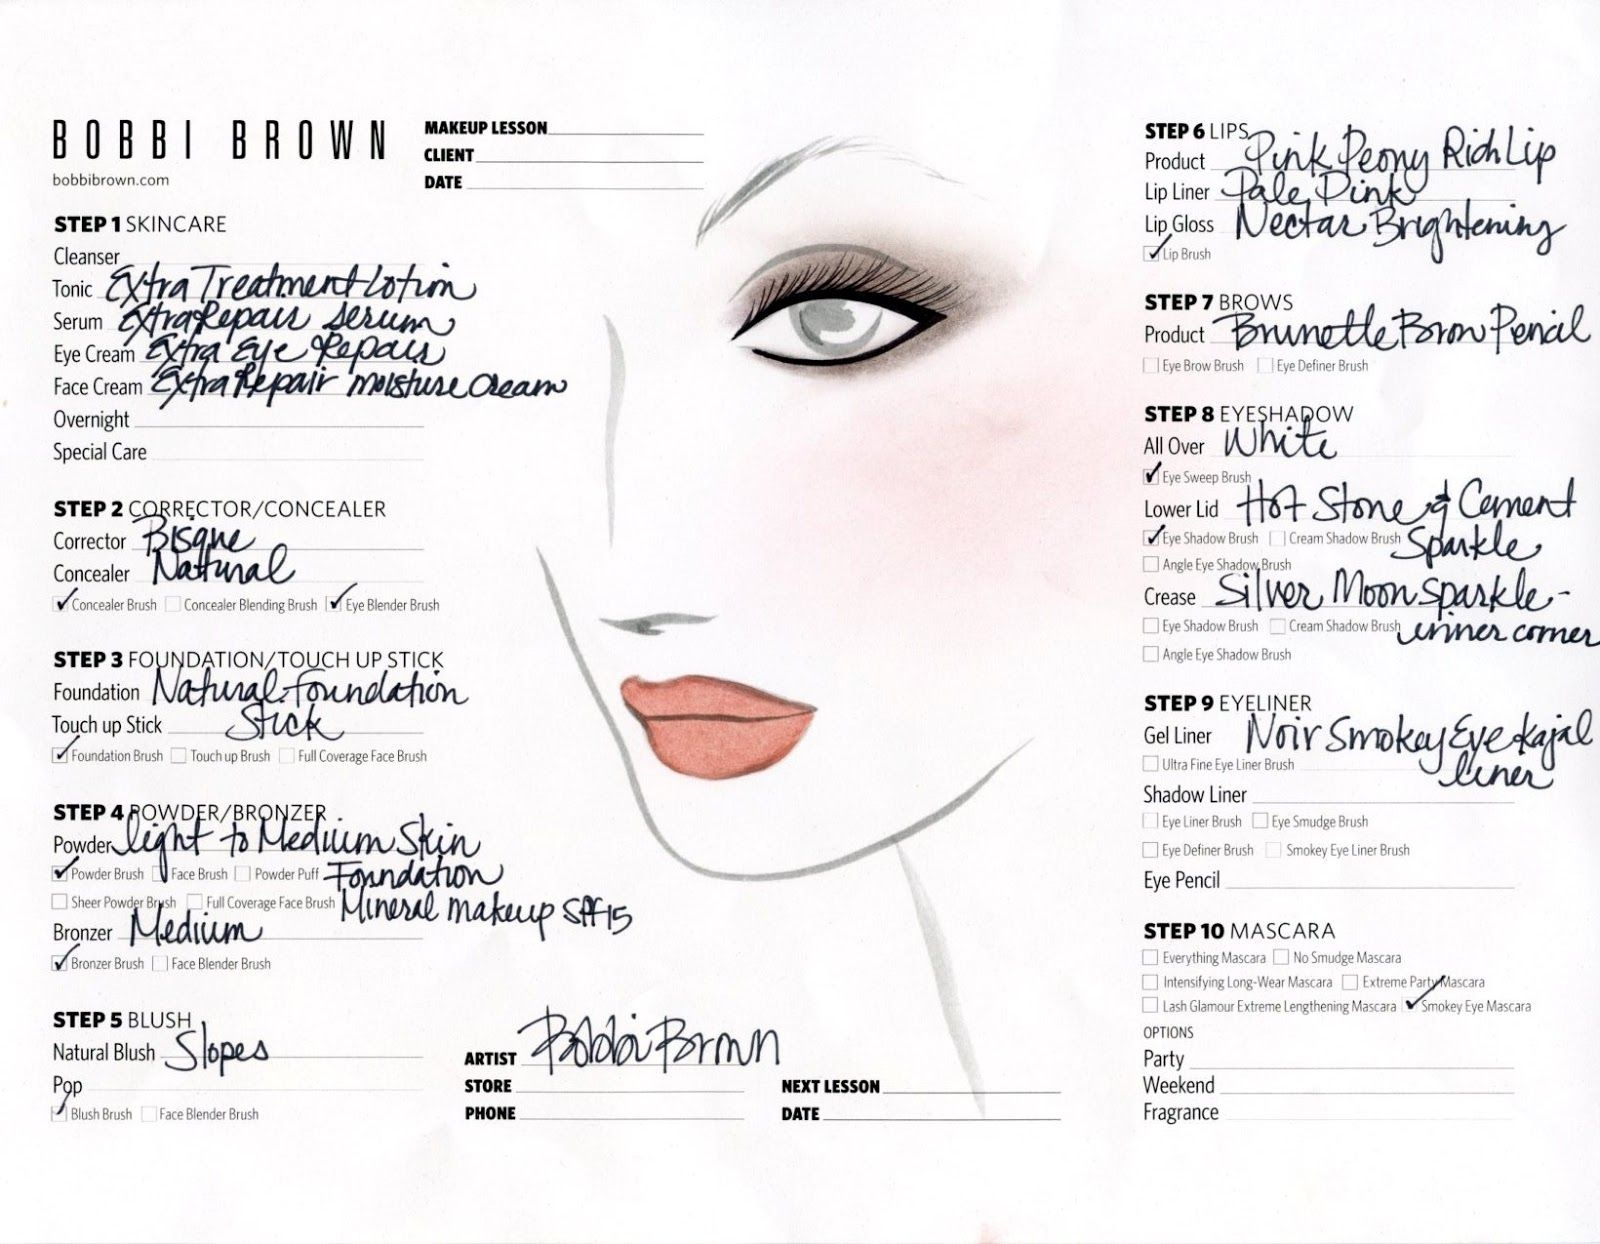 Face Charts For Some Makeup From Bobbi Brown in